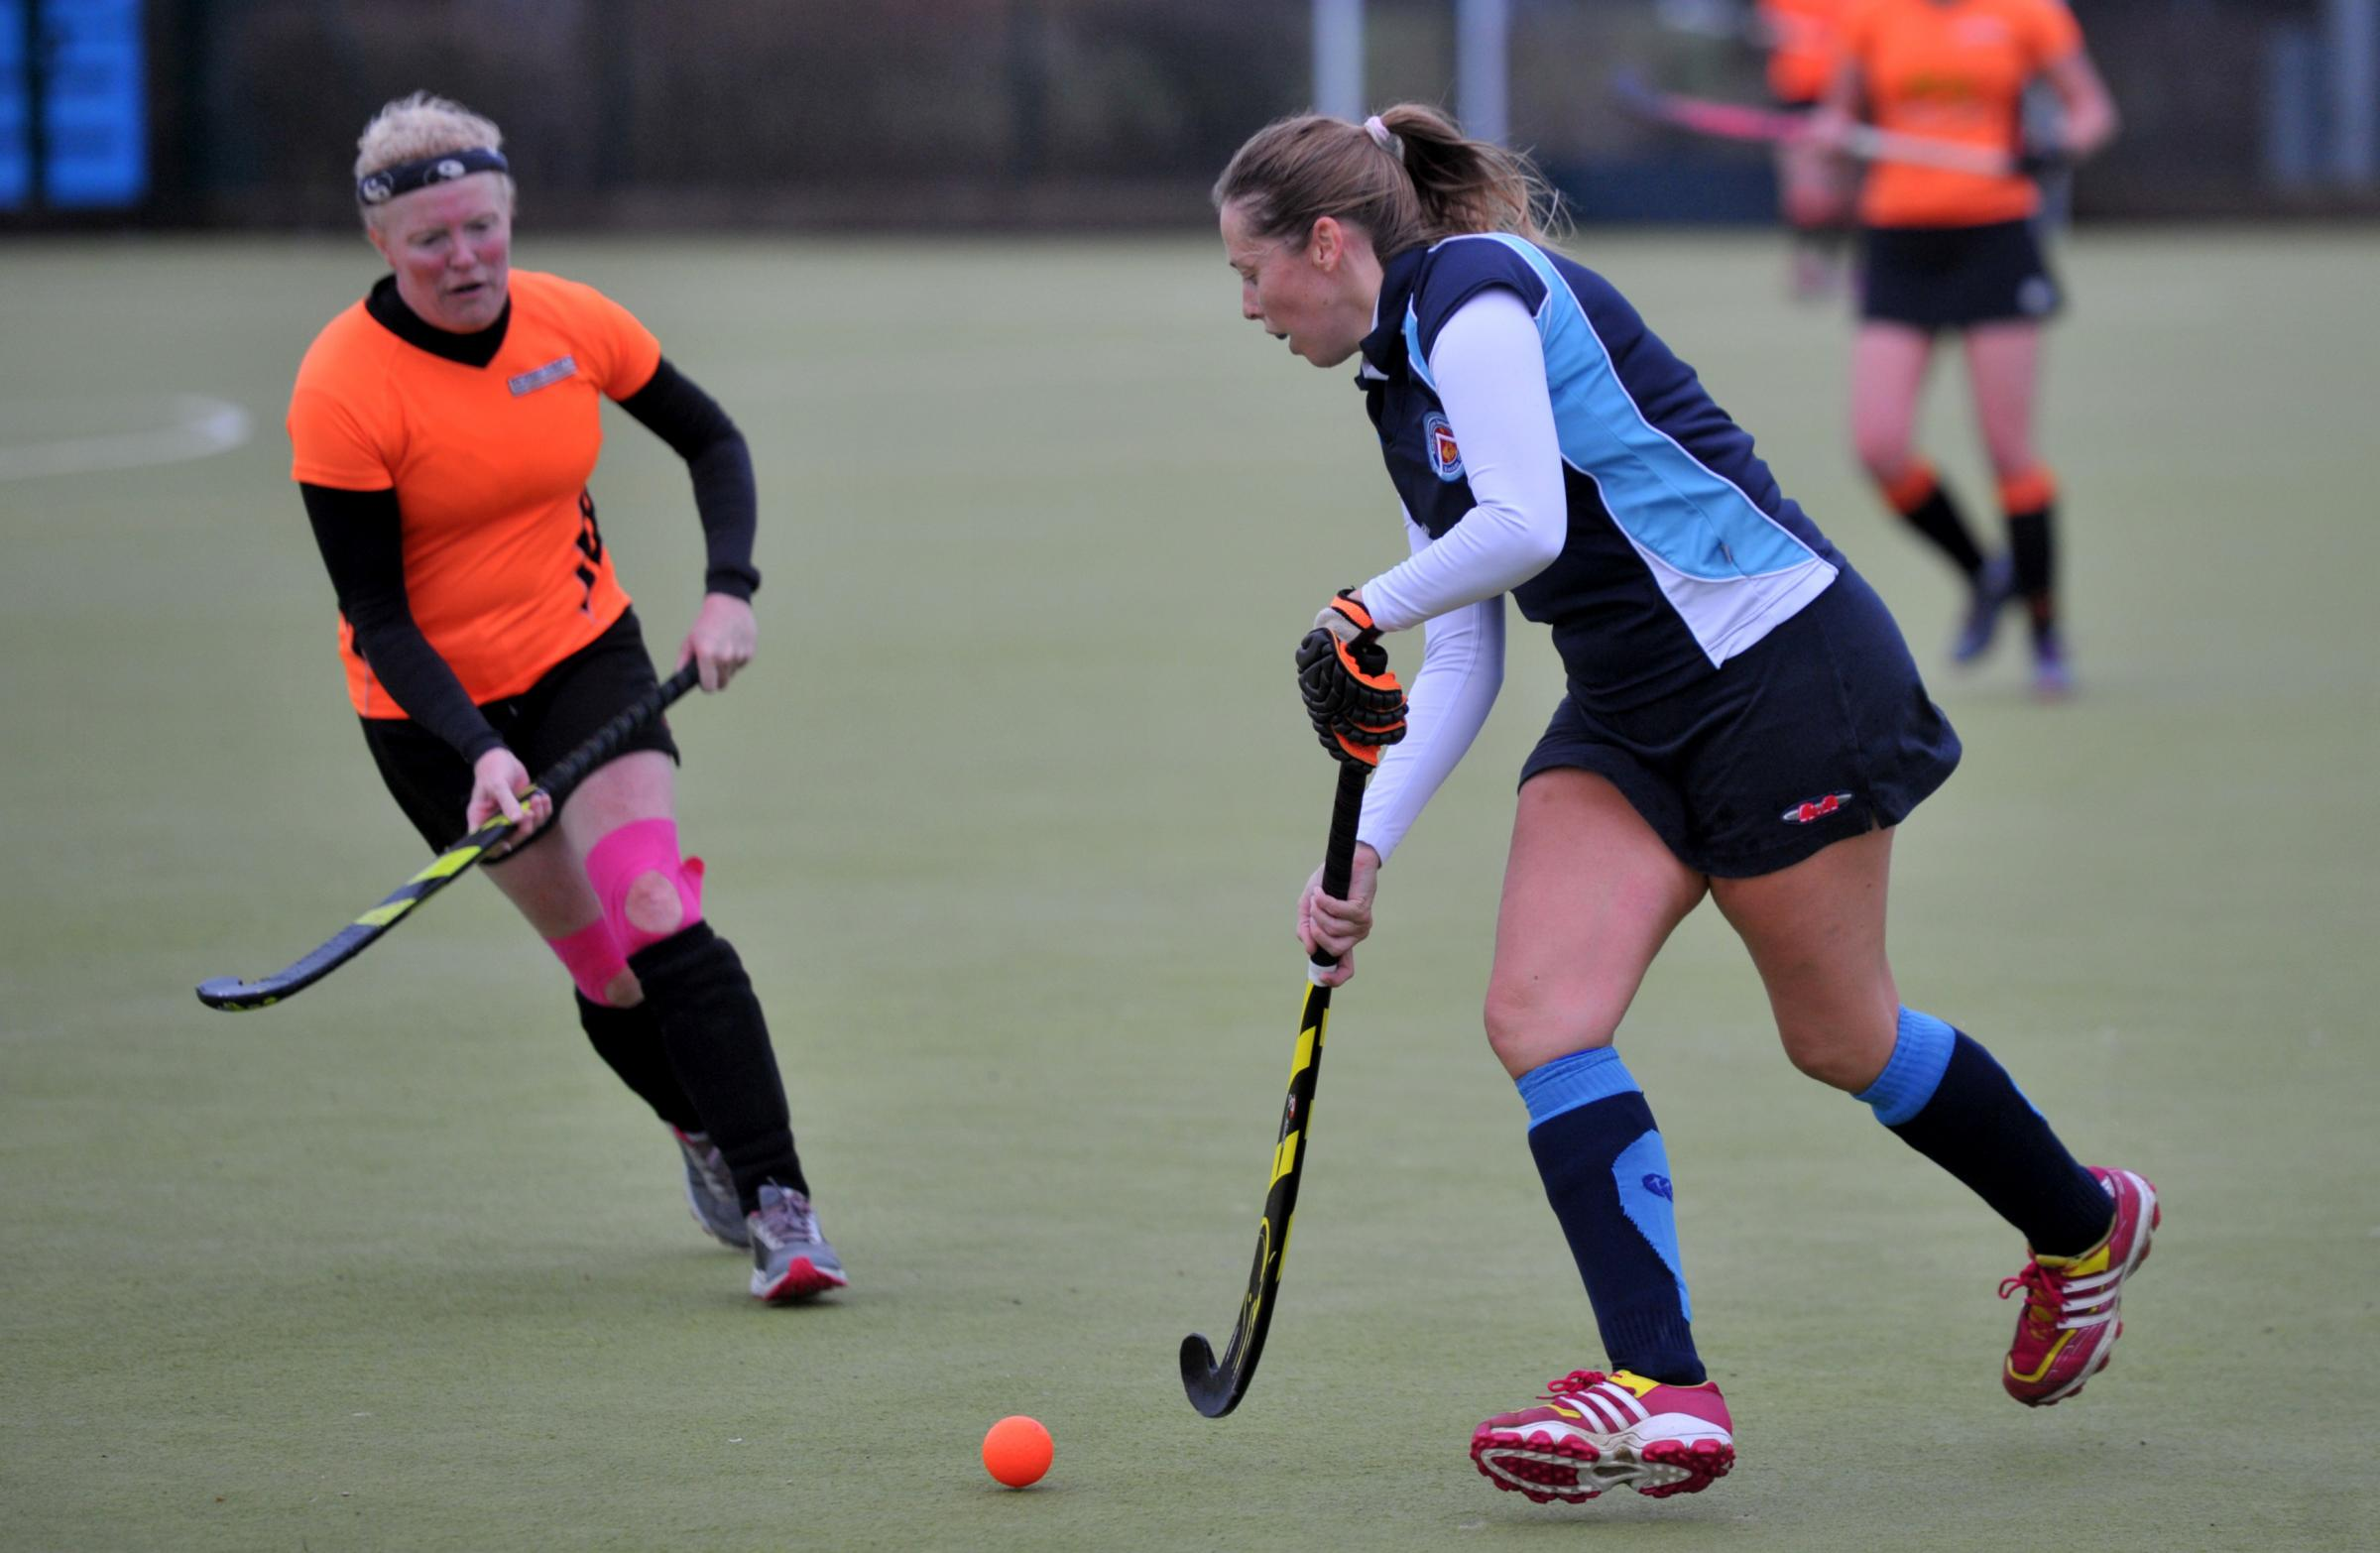 Hockey Swindon 2 v Royal Wootton Bassett 2 at Redhouse school..Pic - Vicky Salmon- WB - right .Date 2/12/18.Pic by Dave Cox.